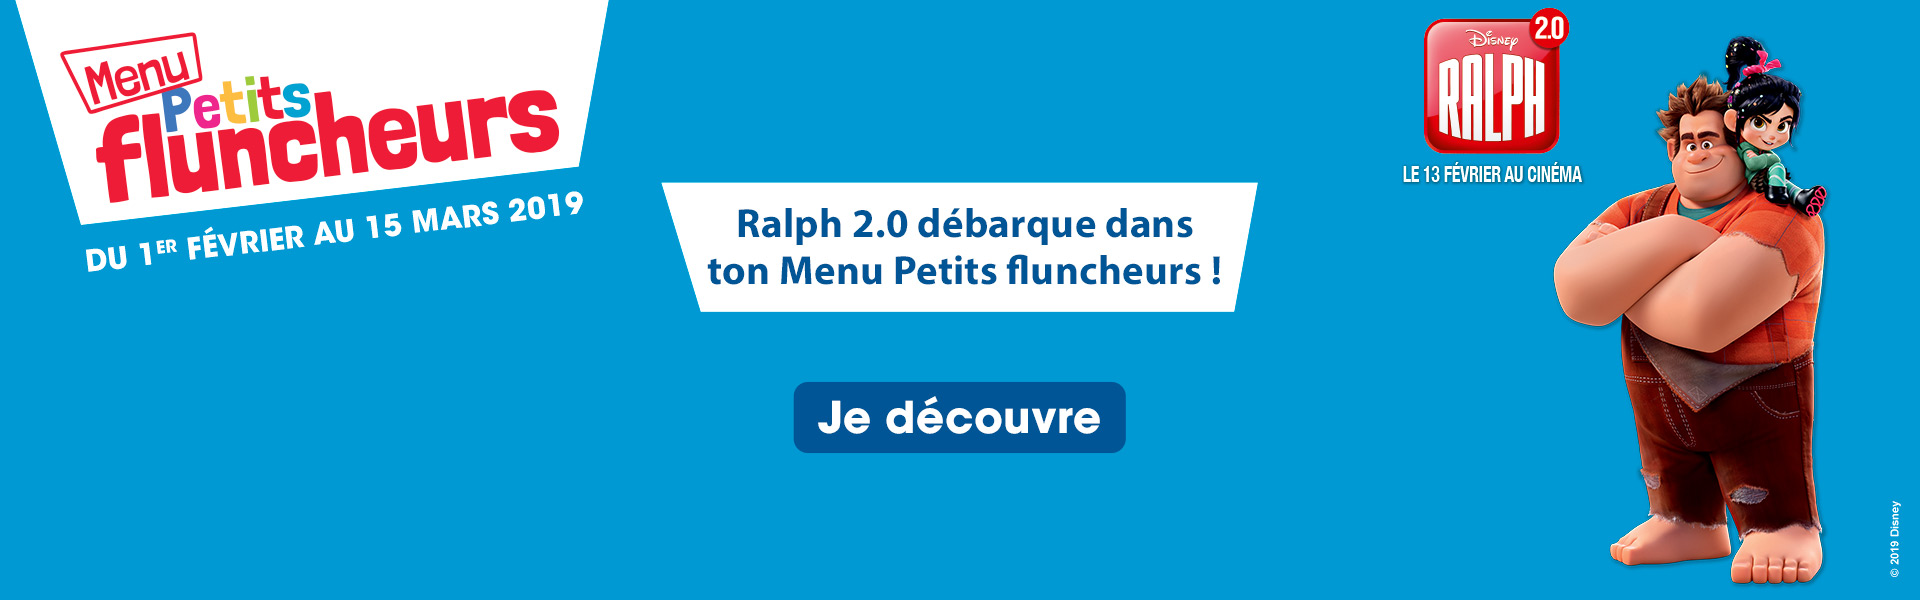 LE_MONDE_DE_RALPH_MENU_ENFANT_FLUNCH